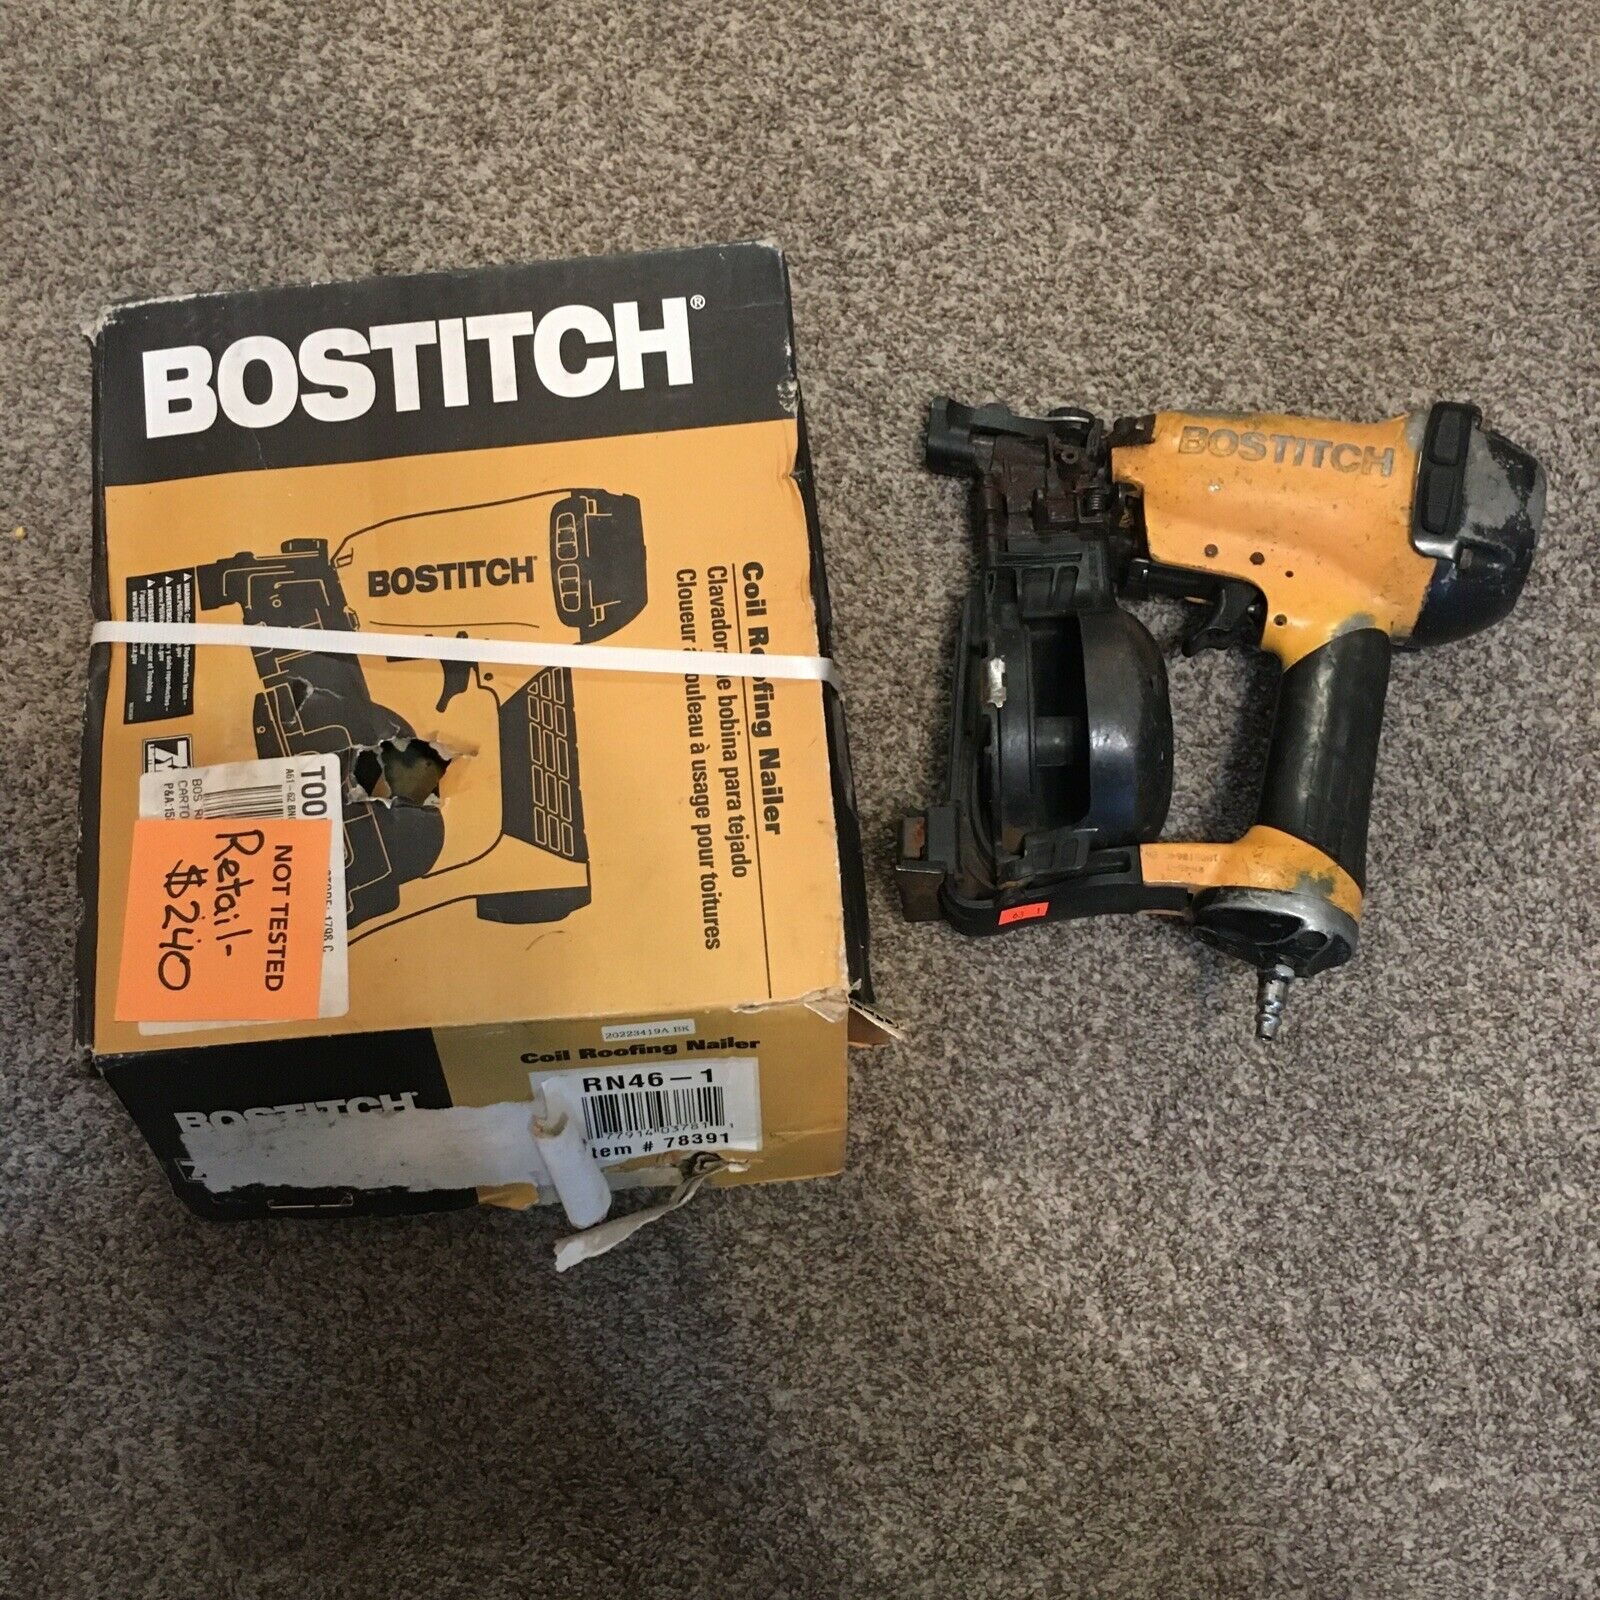 RN461 querea_14 BOSTITCH RN46-1 Coil Roofing Nailer Power Tool